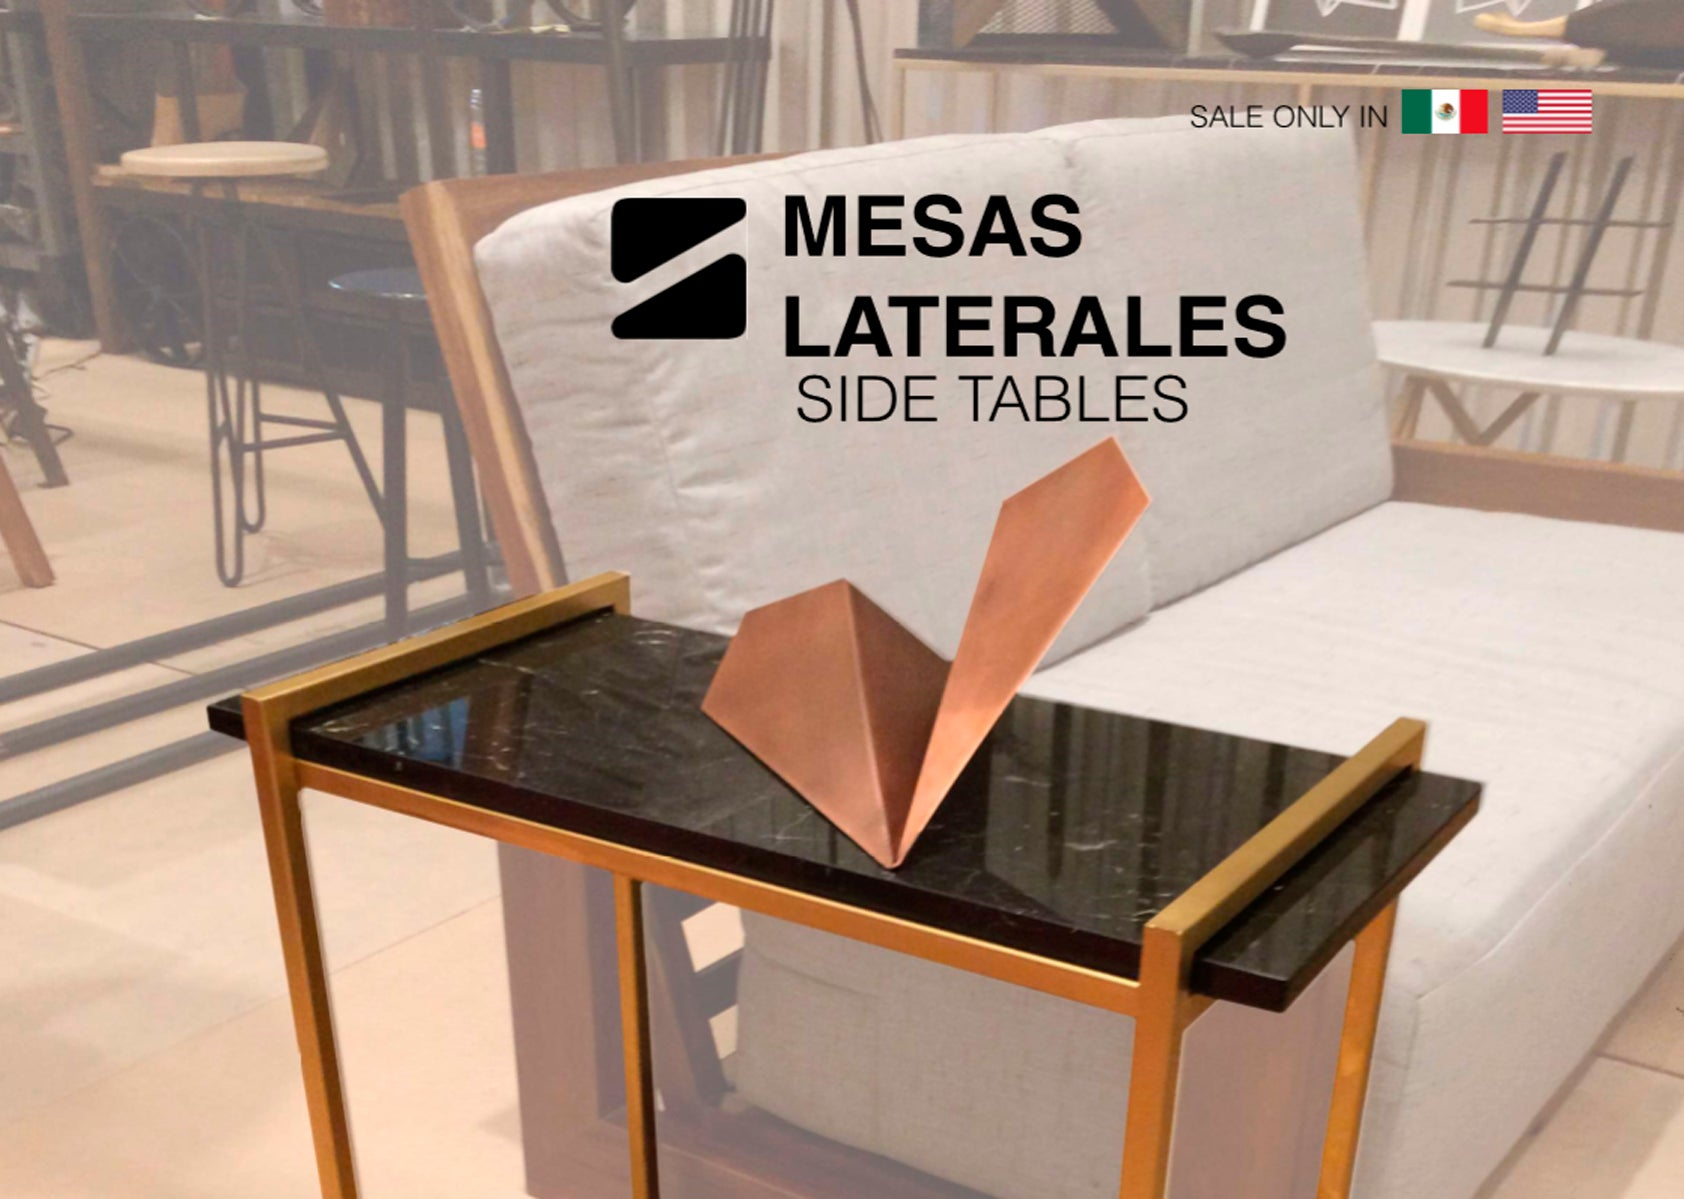 MESAS LATERALES // SIDE TABLES